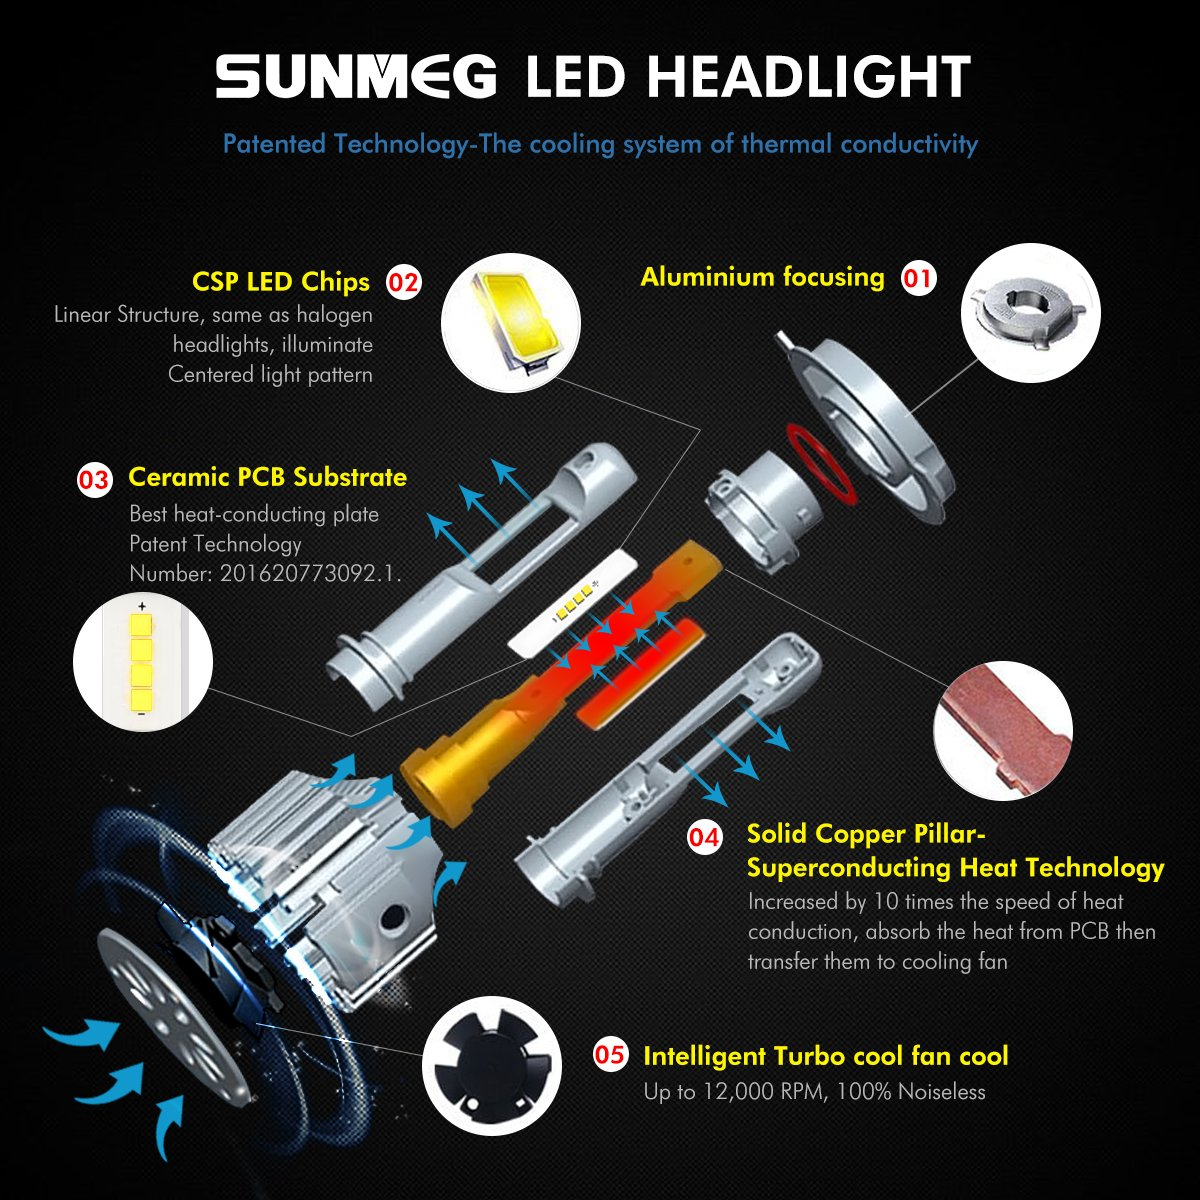 Sunmeg Led Automobile Headlight Bulbs H7 Csp Chips Circuit Board Partselectrical Components Buy Pcbausb Conversion Kit For Replacing Halogen Headlamp 60w 8000 Lumen 6000k Cool White